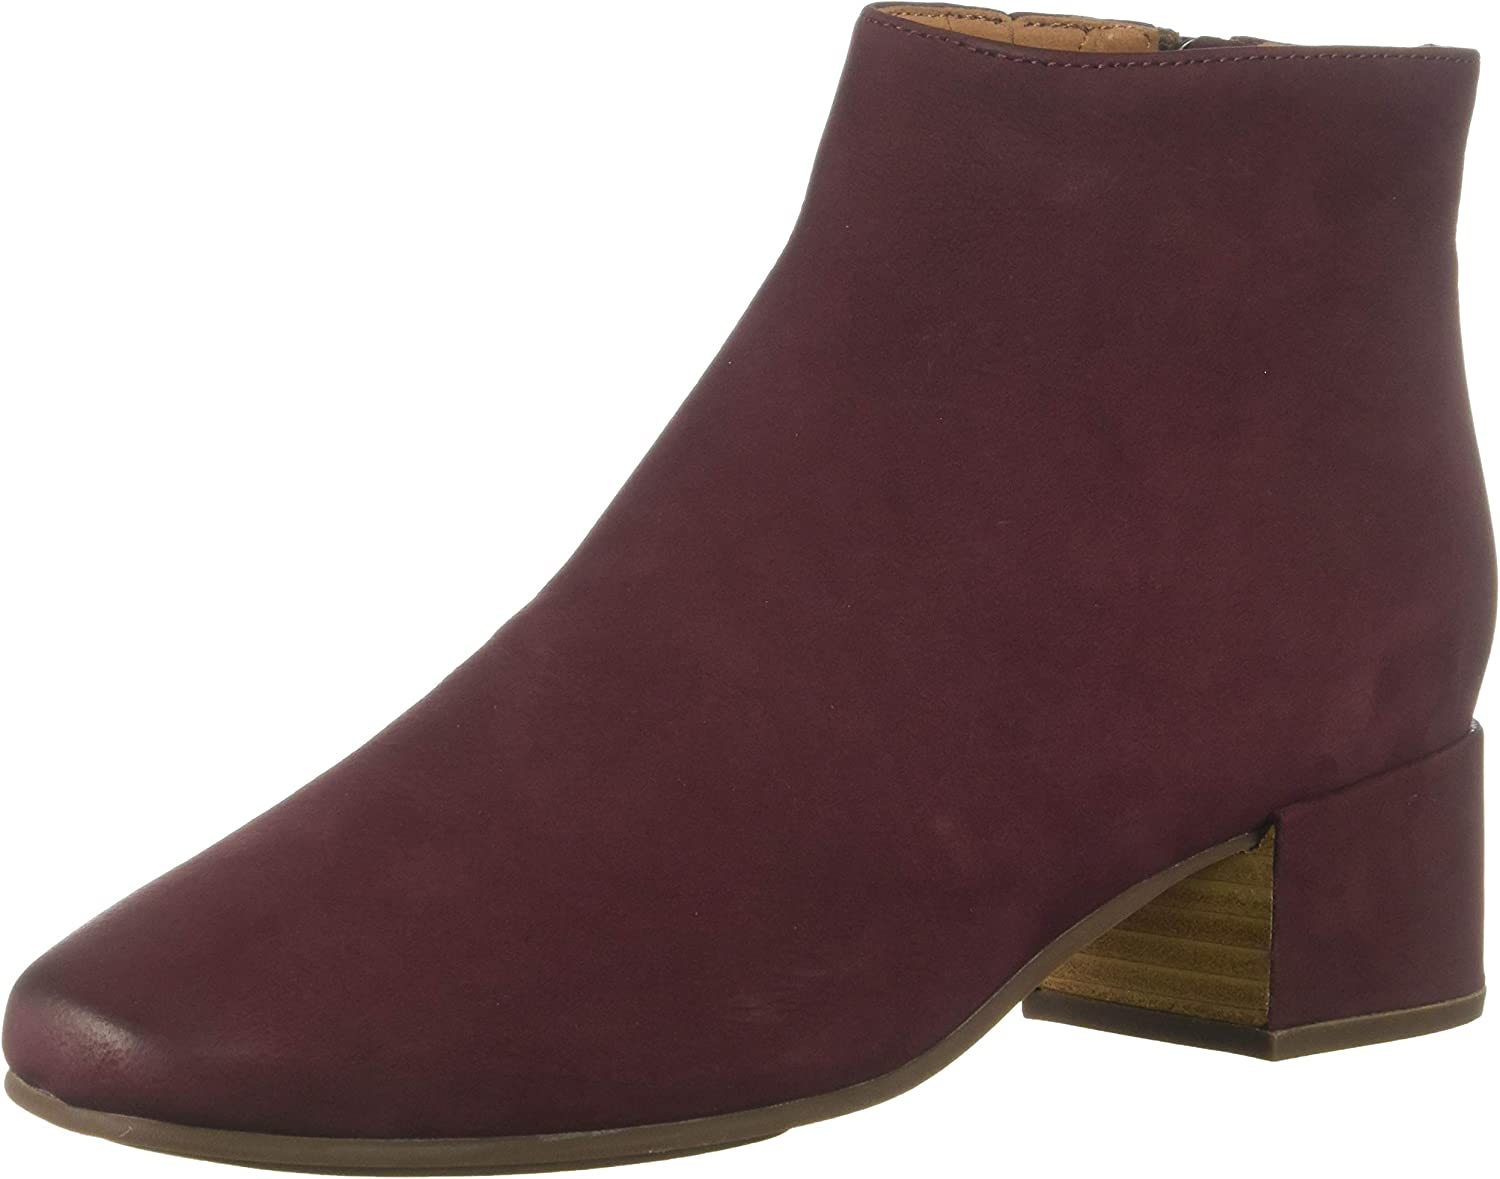 Gentle Souls Womens Ella Low Heel Bootie Ankle Boot